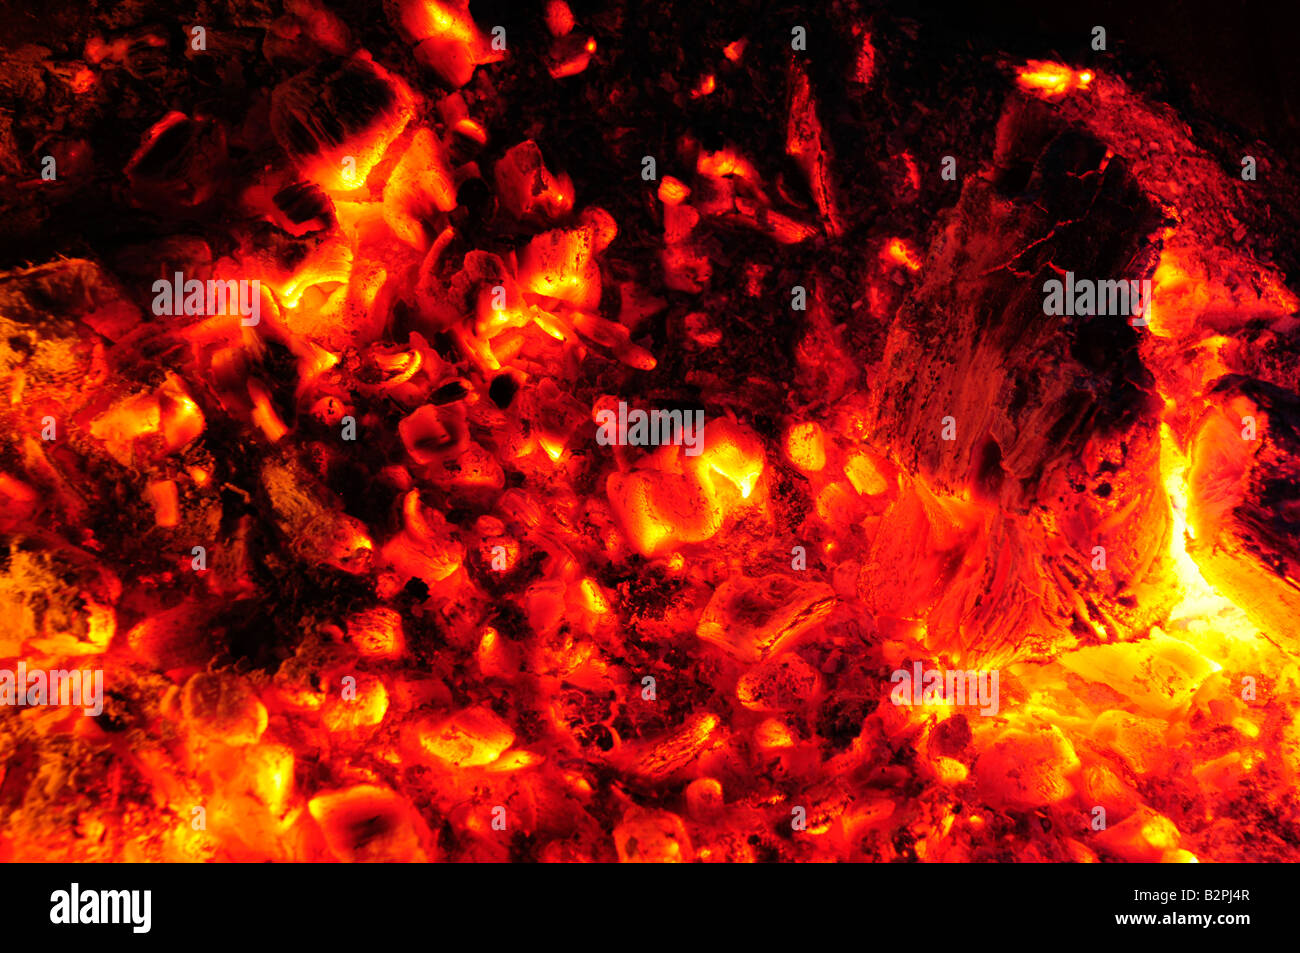 Braise d'un feu tournant molten Photo Stock